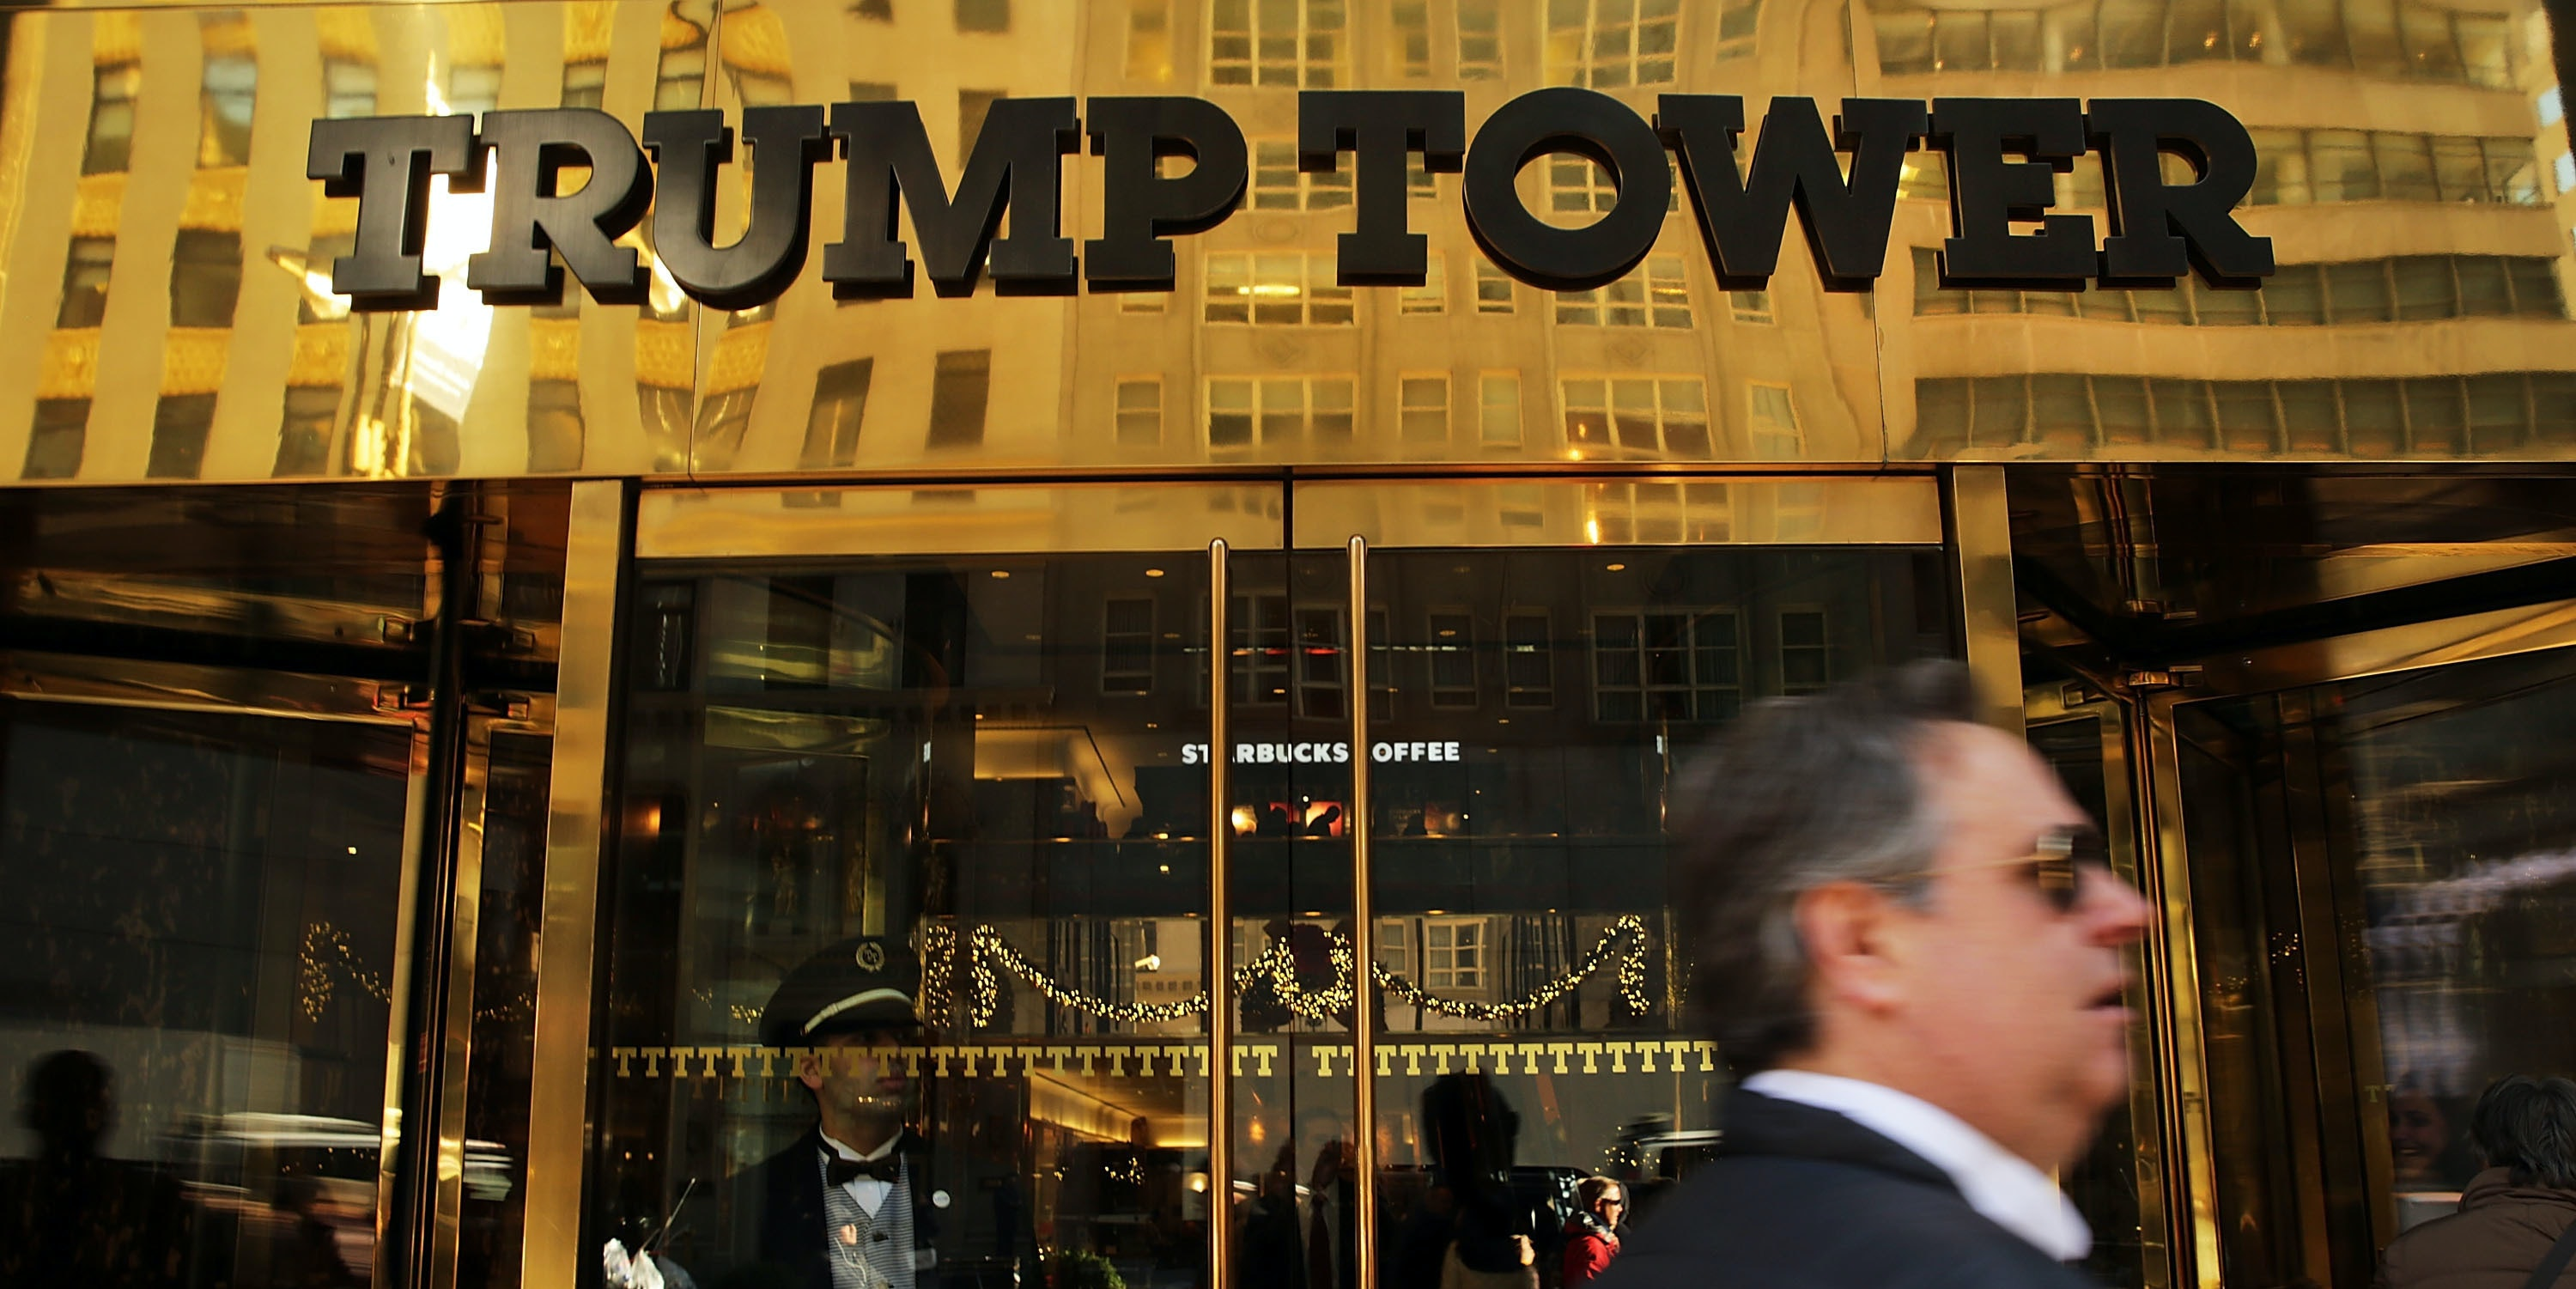 NEW YORK, NY - DECEMBER 08:  People walk by the Trump Tower in Midtown Manhattan on December 8, 2015 in New York City. Donald Trumps latest incendiary remarks concerning Muslims has led to criticism across the nation, including many of his fellow GOP presidential candidates. Trump said in a recent speech in South Carolina that he would block all Muslims from entering the United States until further intelligence and security measures were in place.  (Photo by Spencer Platt/Getty Images)